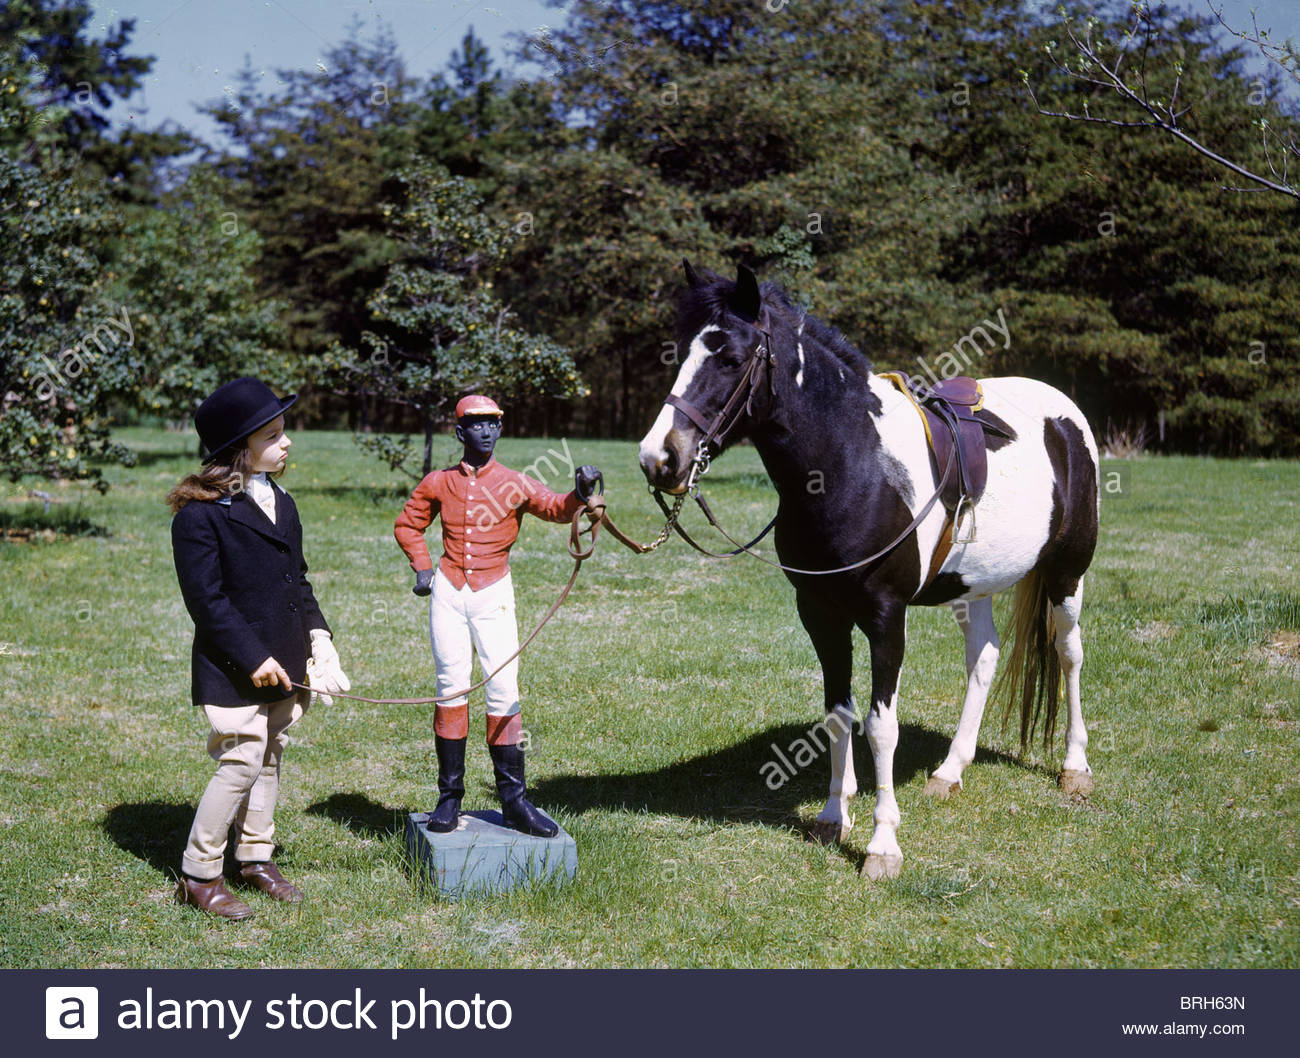 A young girl and her horse at a cast iron hitching post